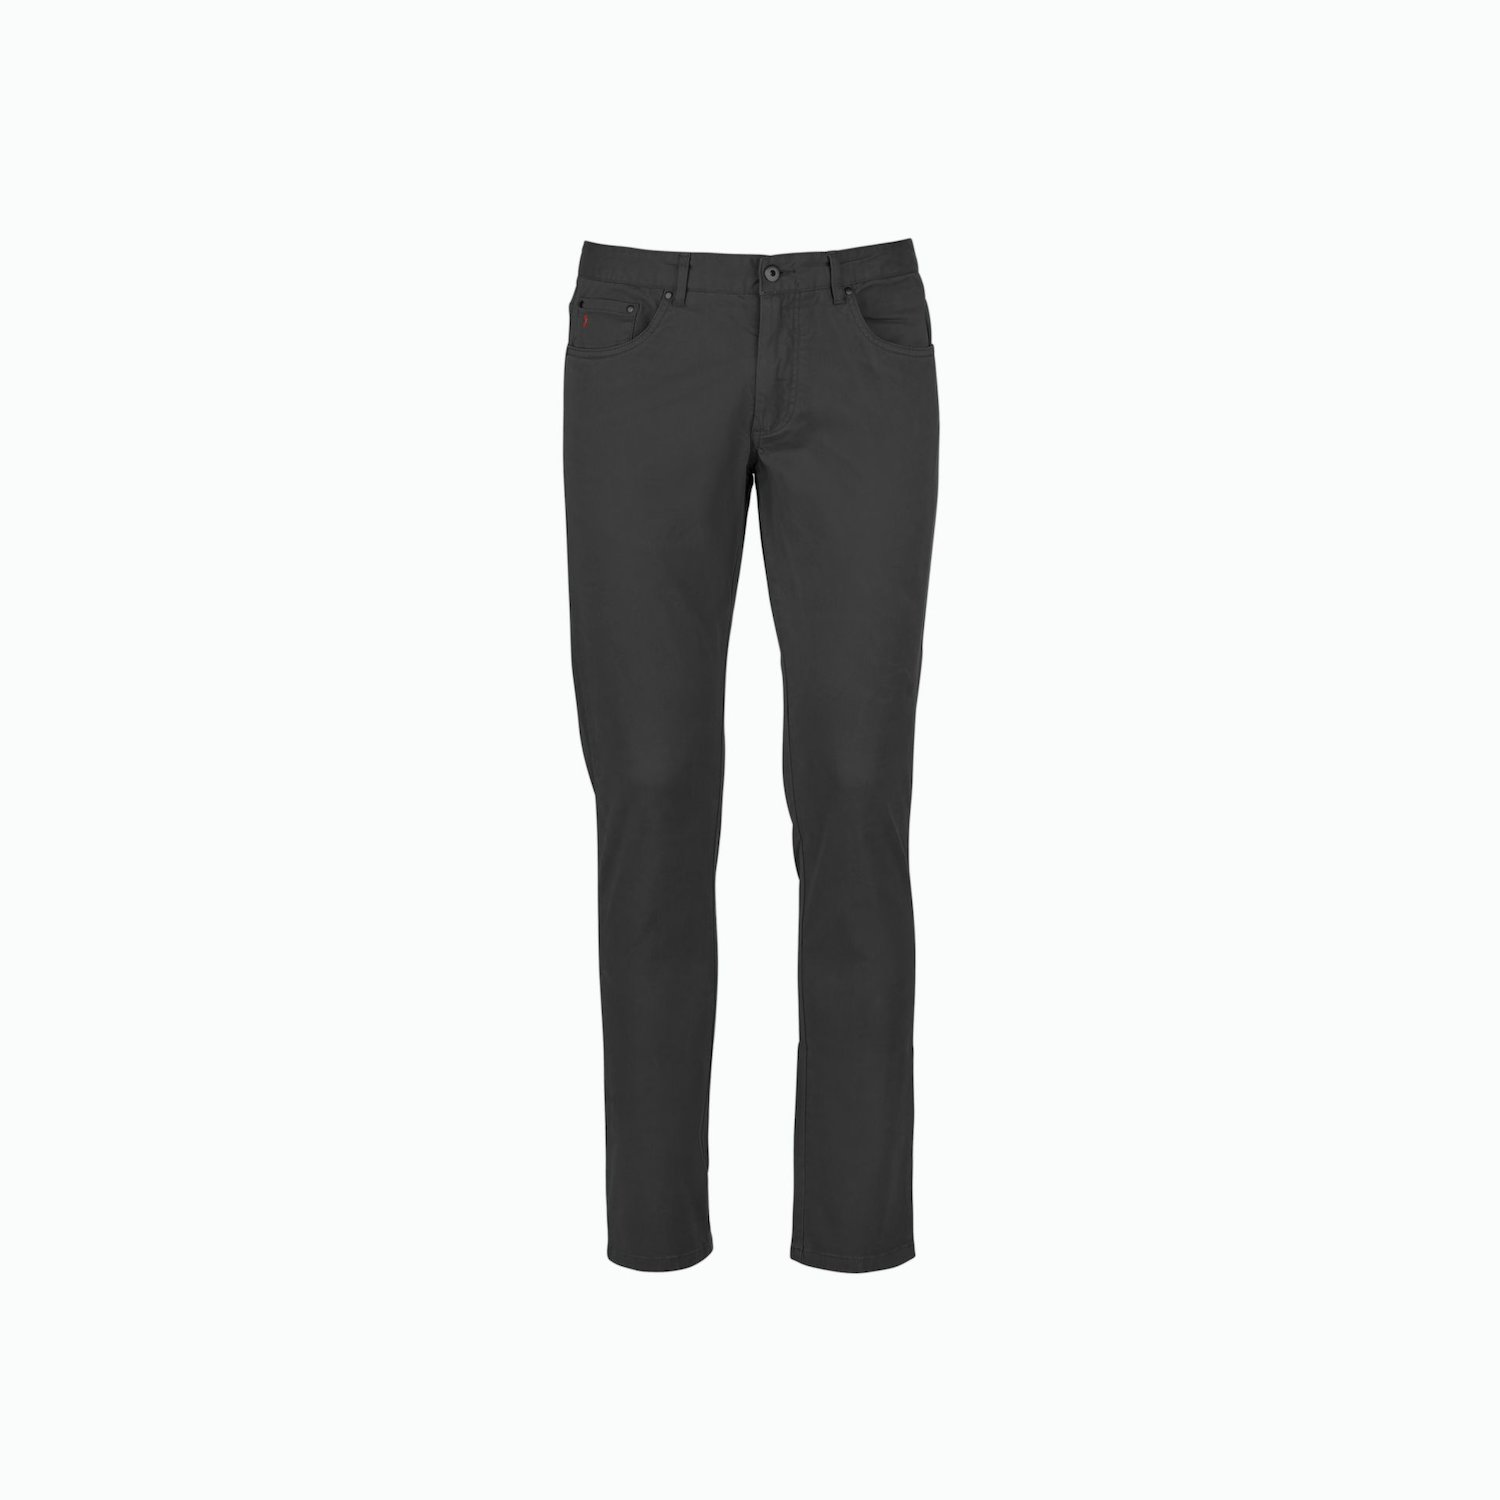 B4 Trousers - Anthracite